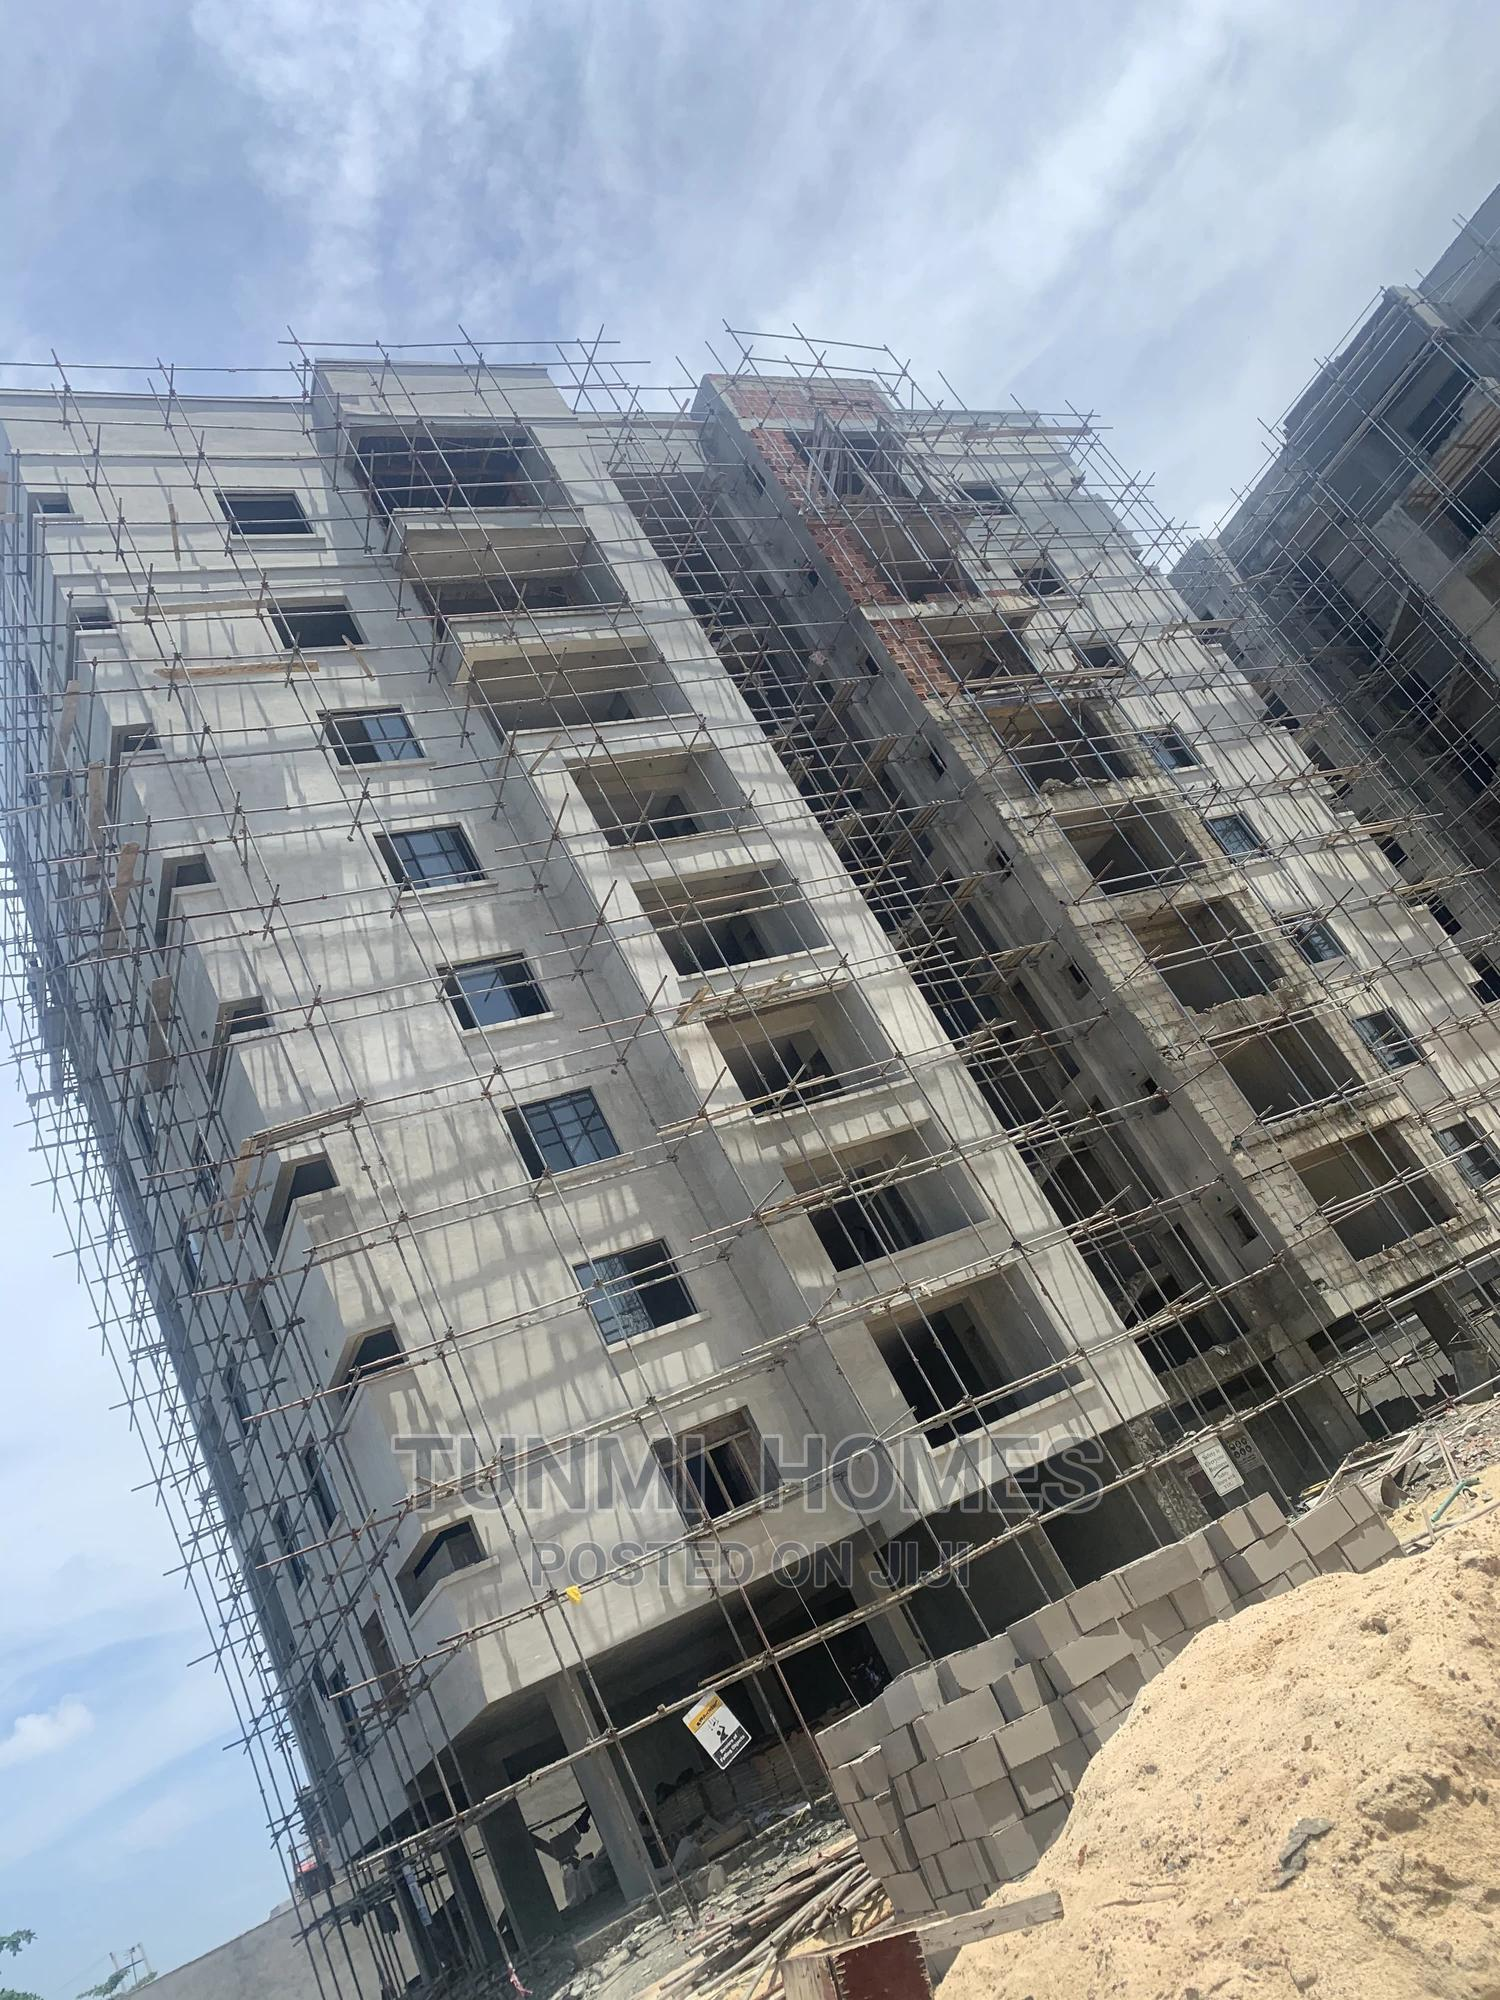 3 Bedrooms Block of Flats for Sale in Beach Road, Lekki | Houses & Apartments For Sale for sale in Lekki, Lagos State, Nigeria